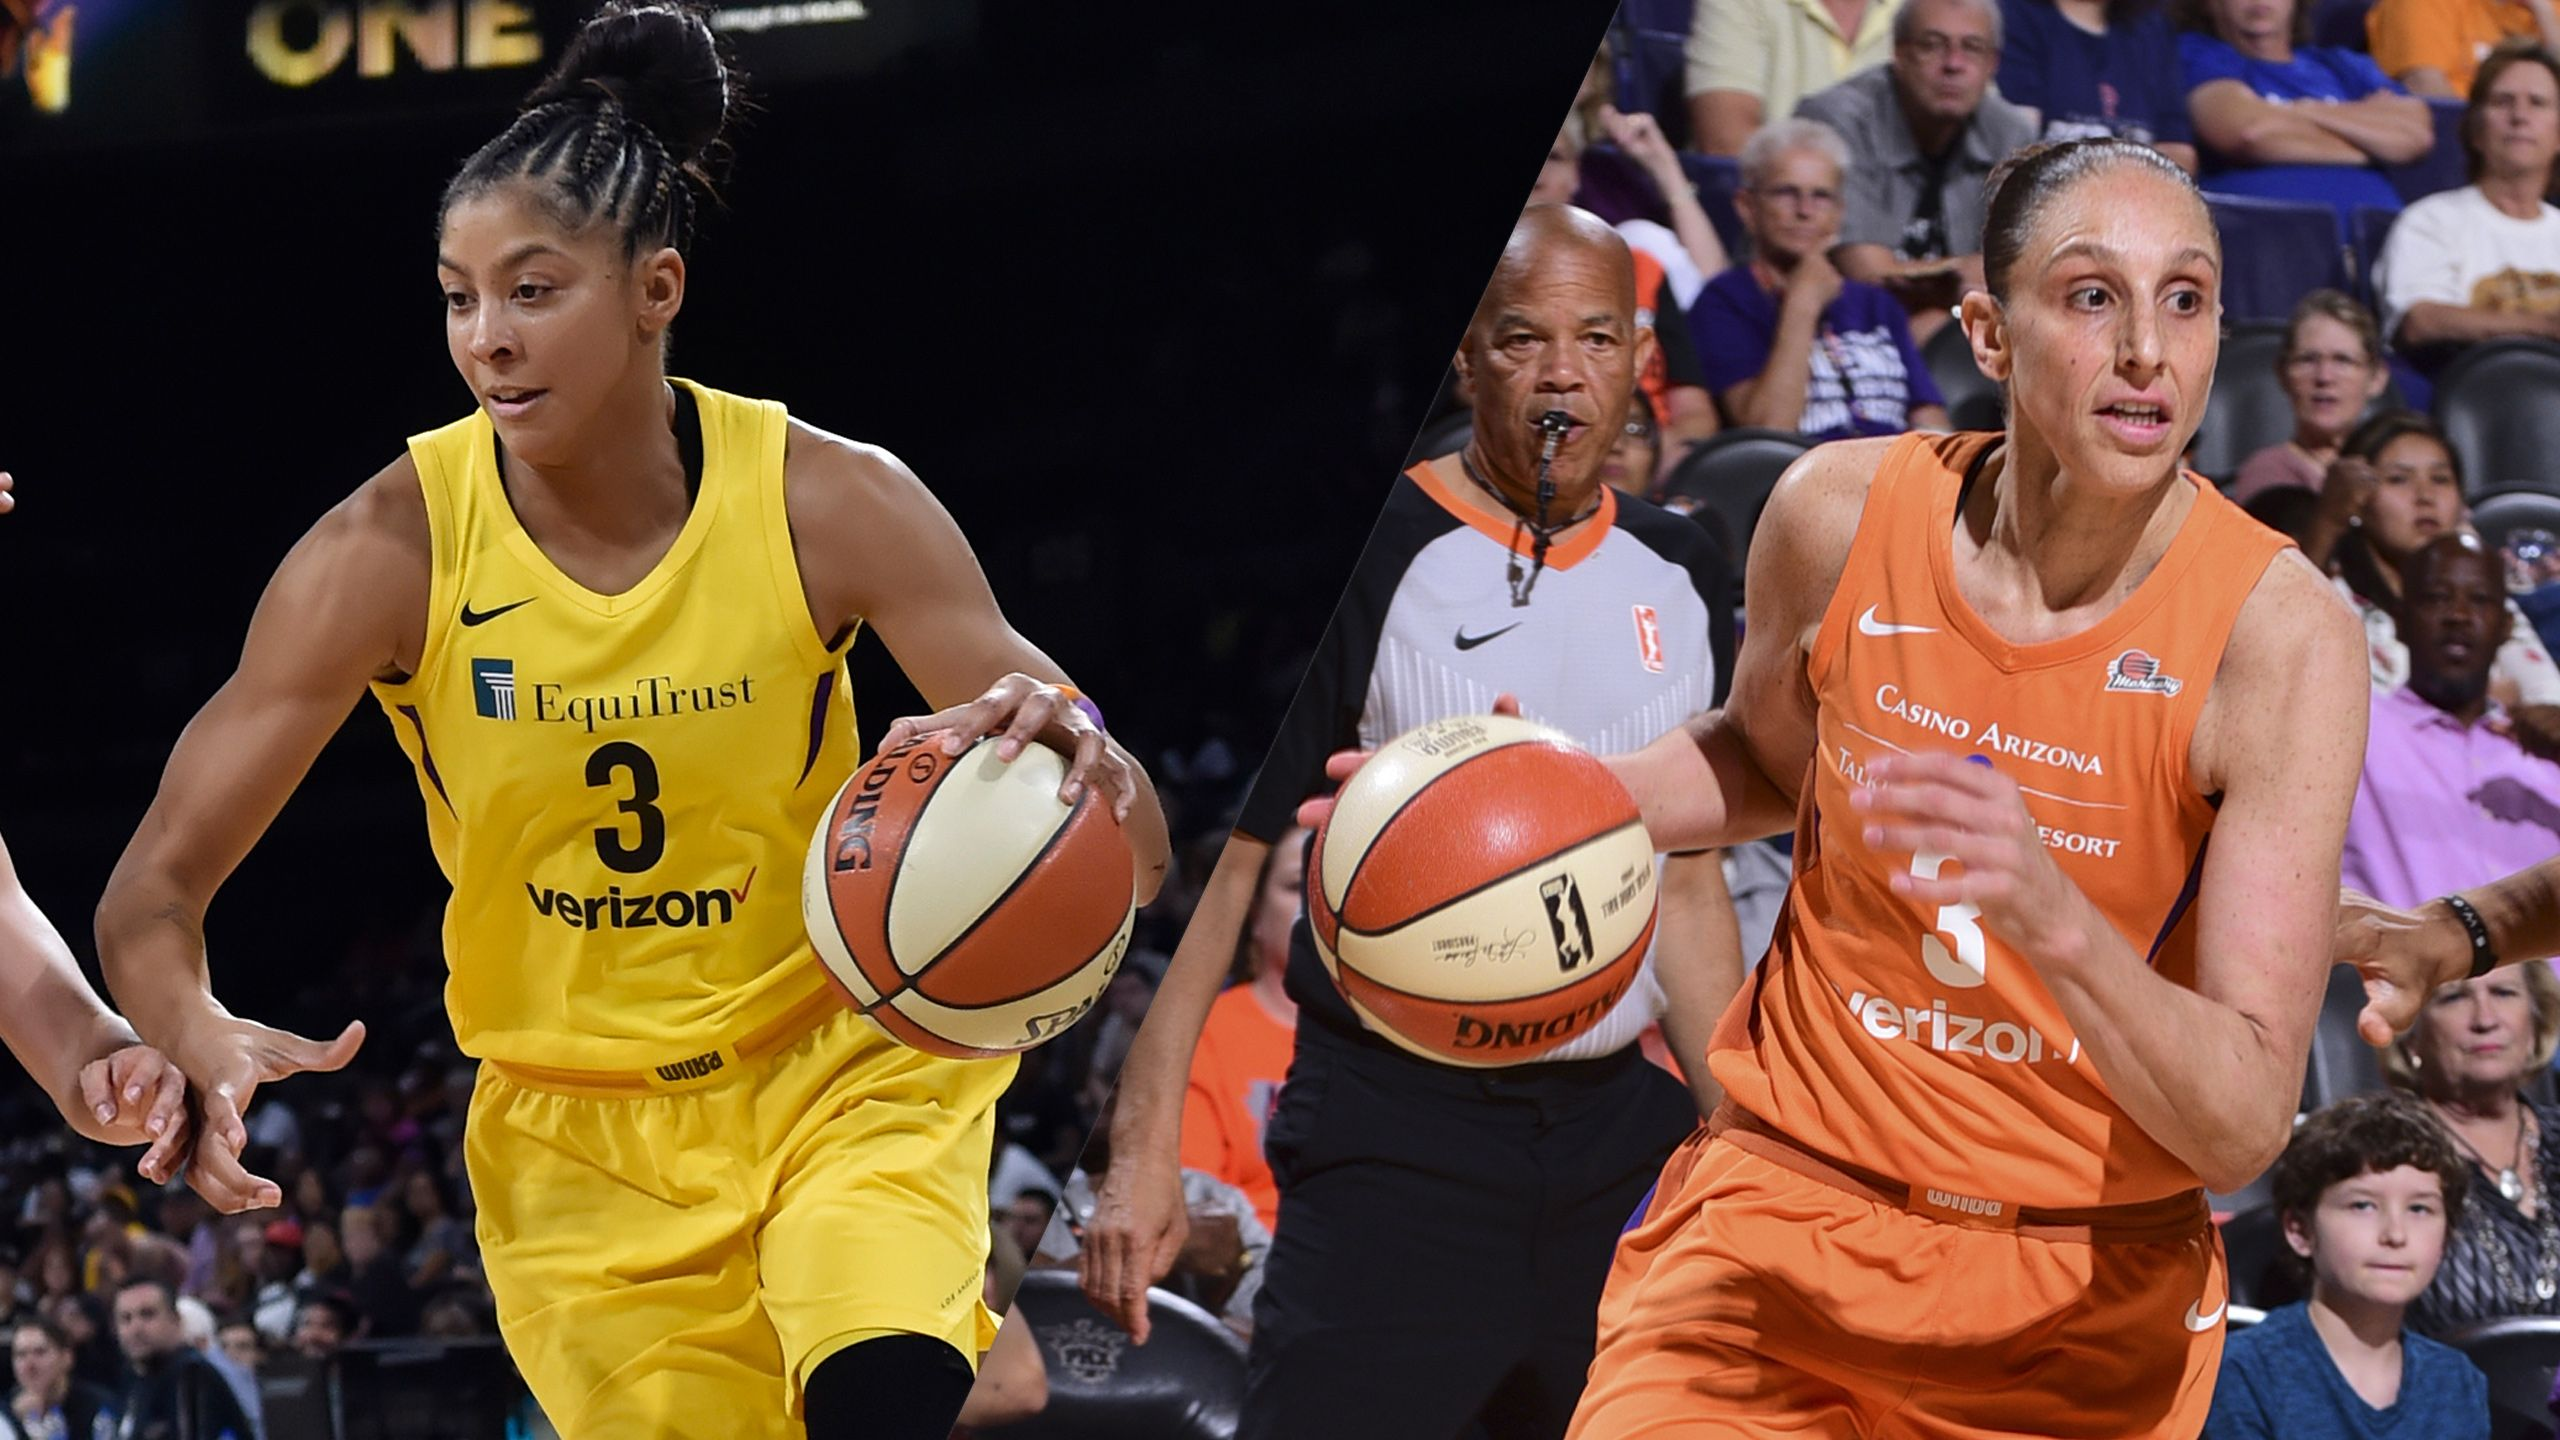 Los Angeles Sparks vs. Phoenix Mercury